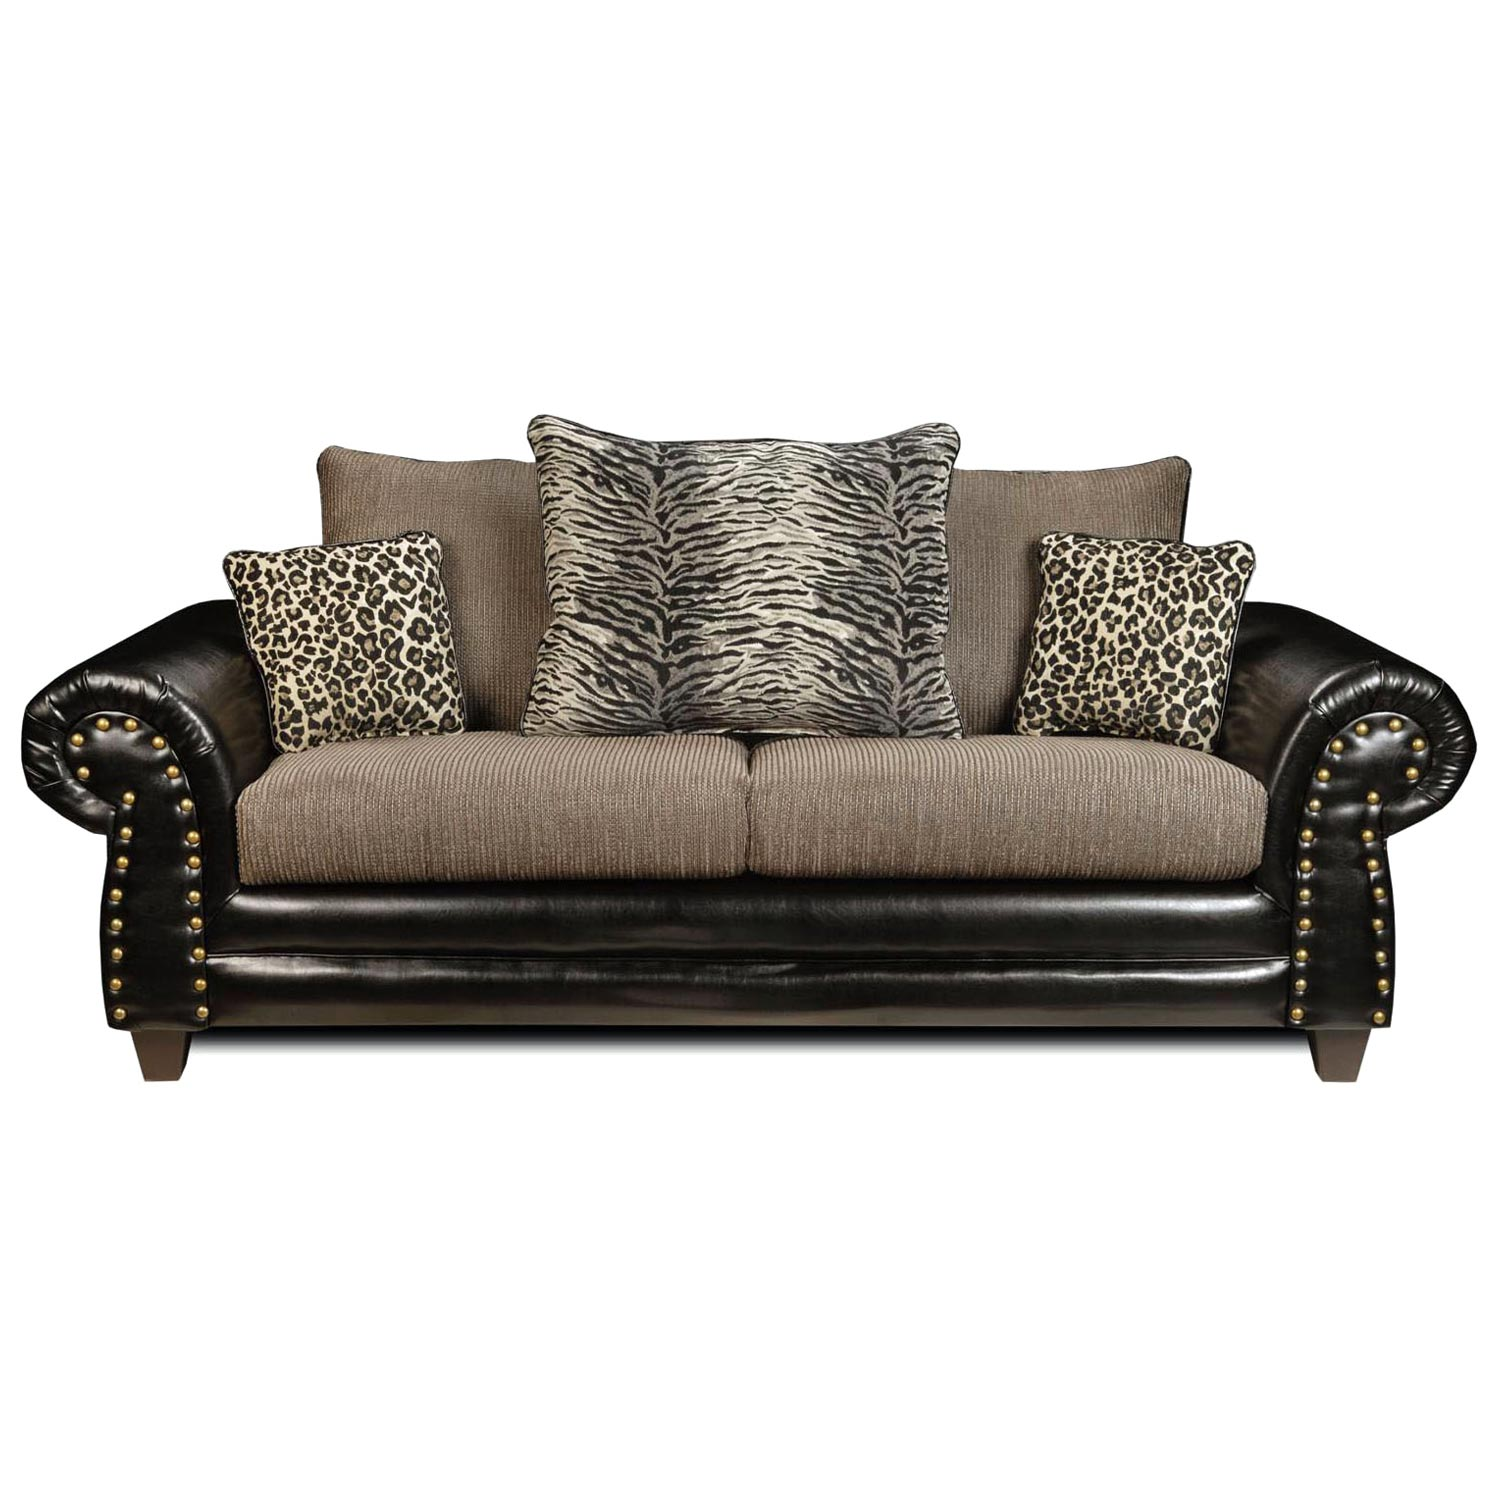 Colbie Transitional Sofa Leopard Tiger Print Pillows Dcg Stores